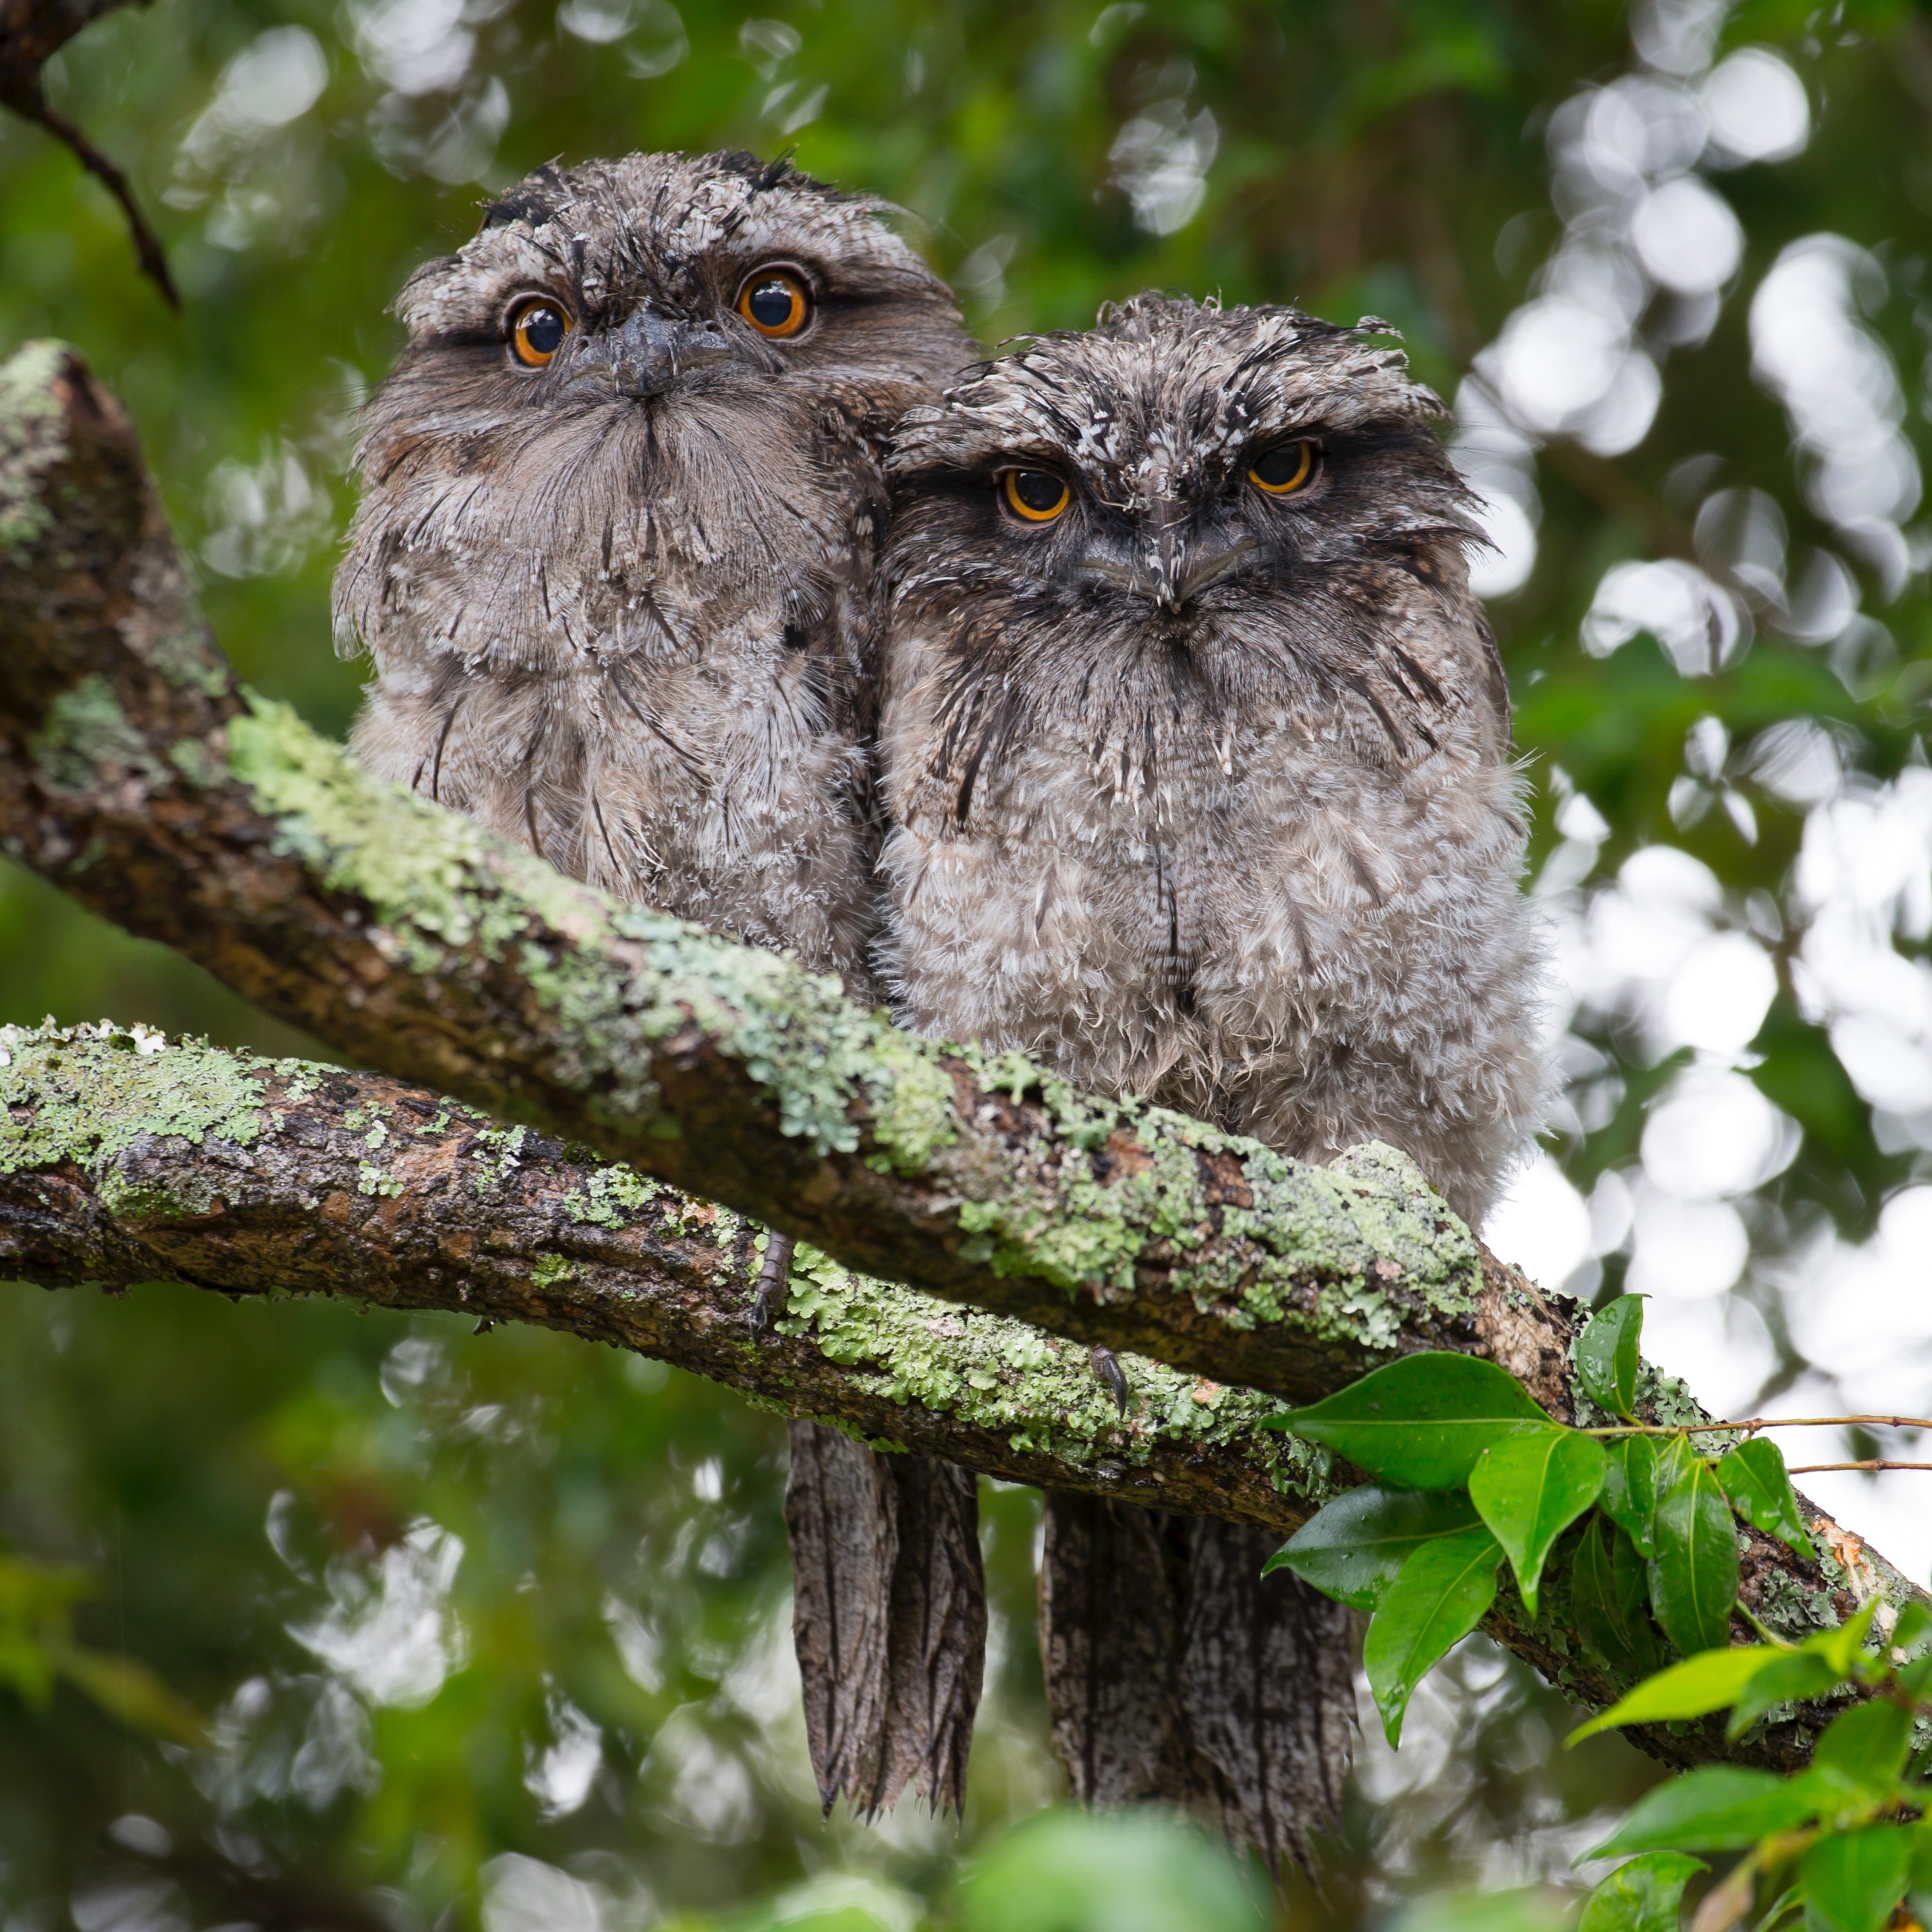 2 owls on tree branch during daytime photo